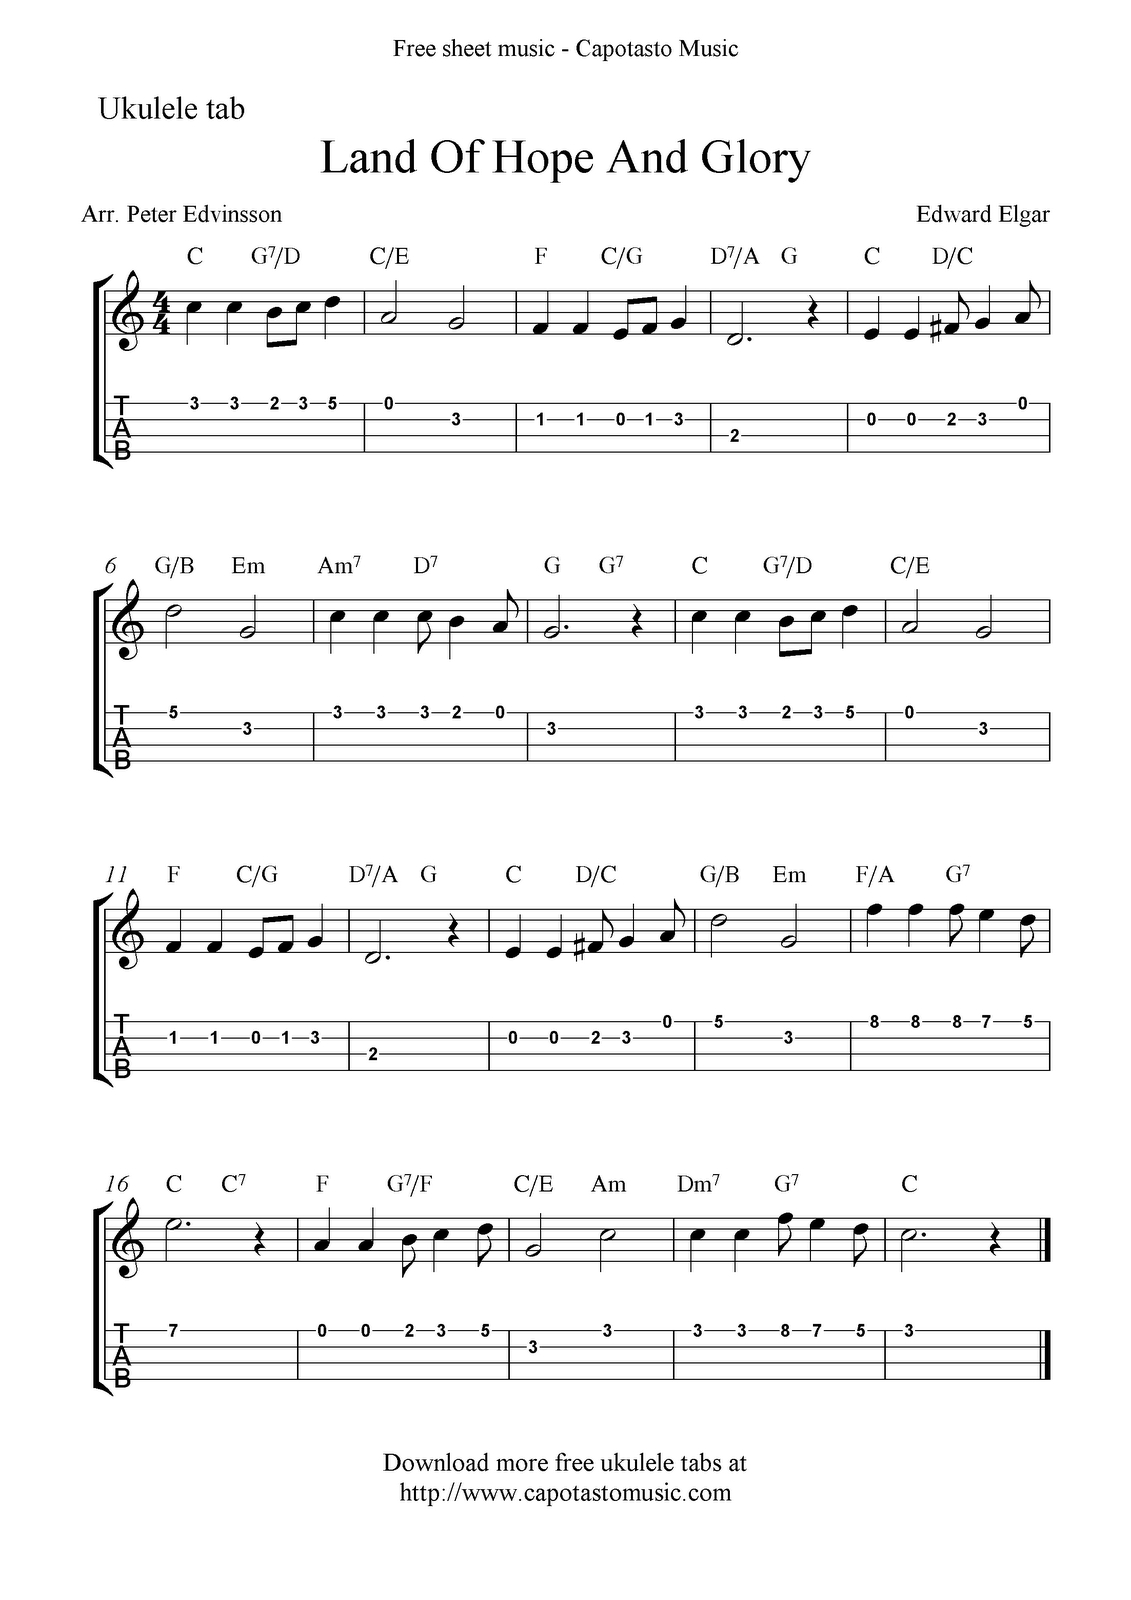 Free Sheet Music Scores: Land Of Hope And Glory (Pomp And - Free Printable Sheet Music Pomp And Circumstance